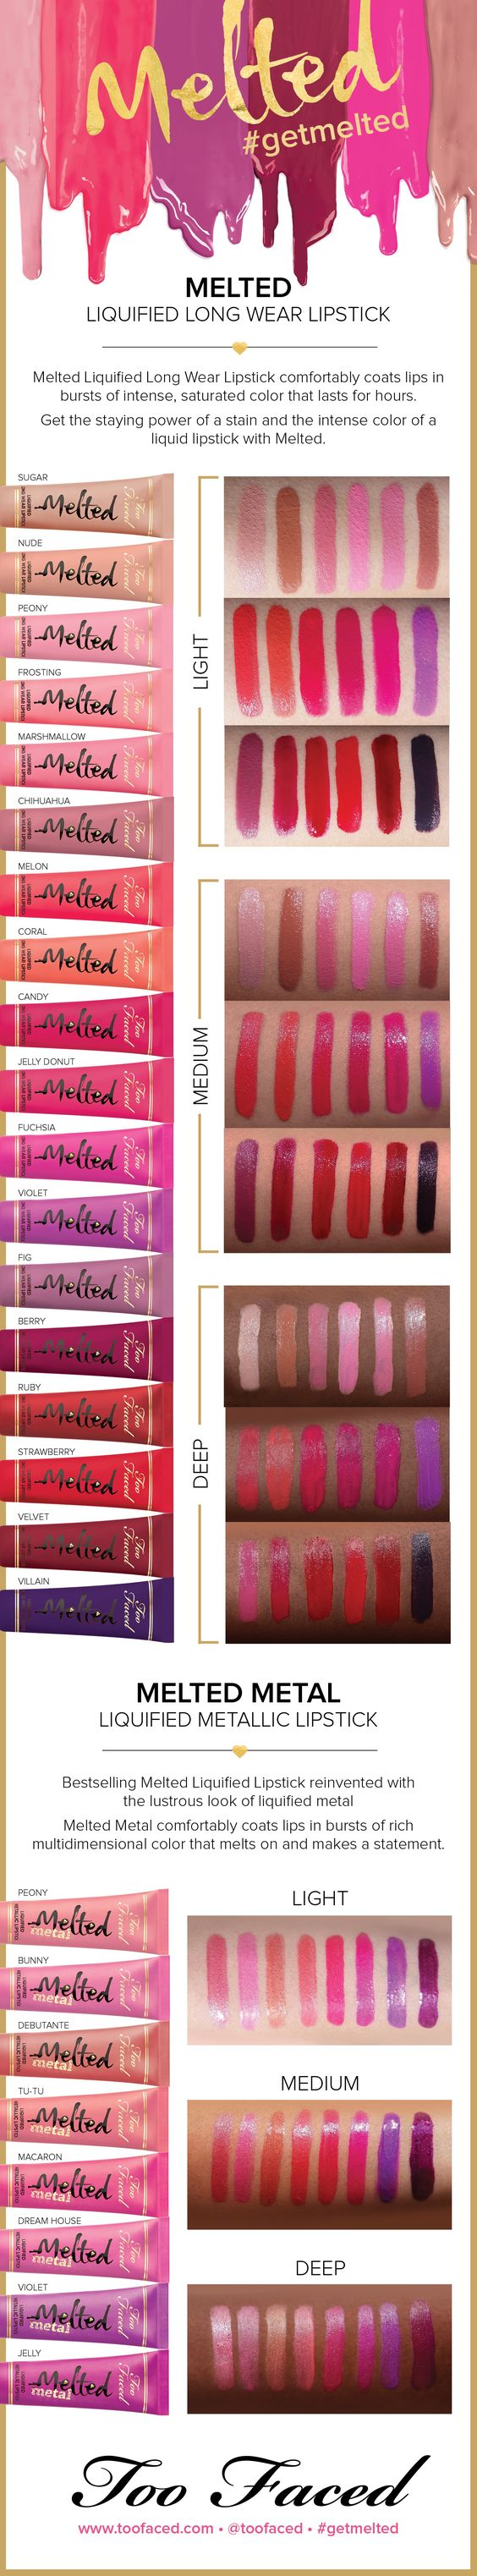 ALLl the Too Faced Melted Swatches, NOT including the NEW Chocolate series!- Get the staying power of a stain and the intense color of a liquid lipstick in one long-wear formula. #toofaced